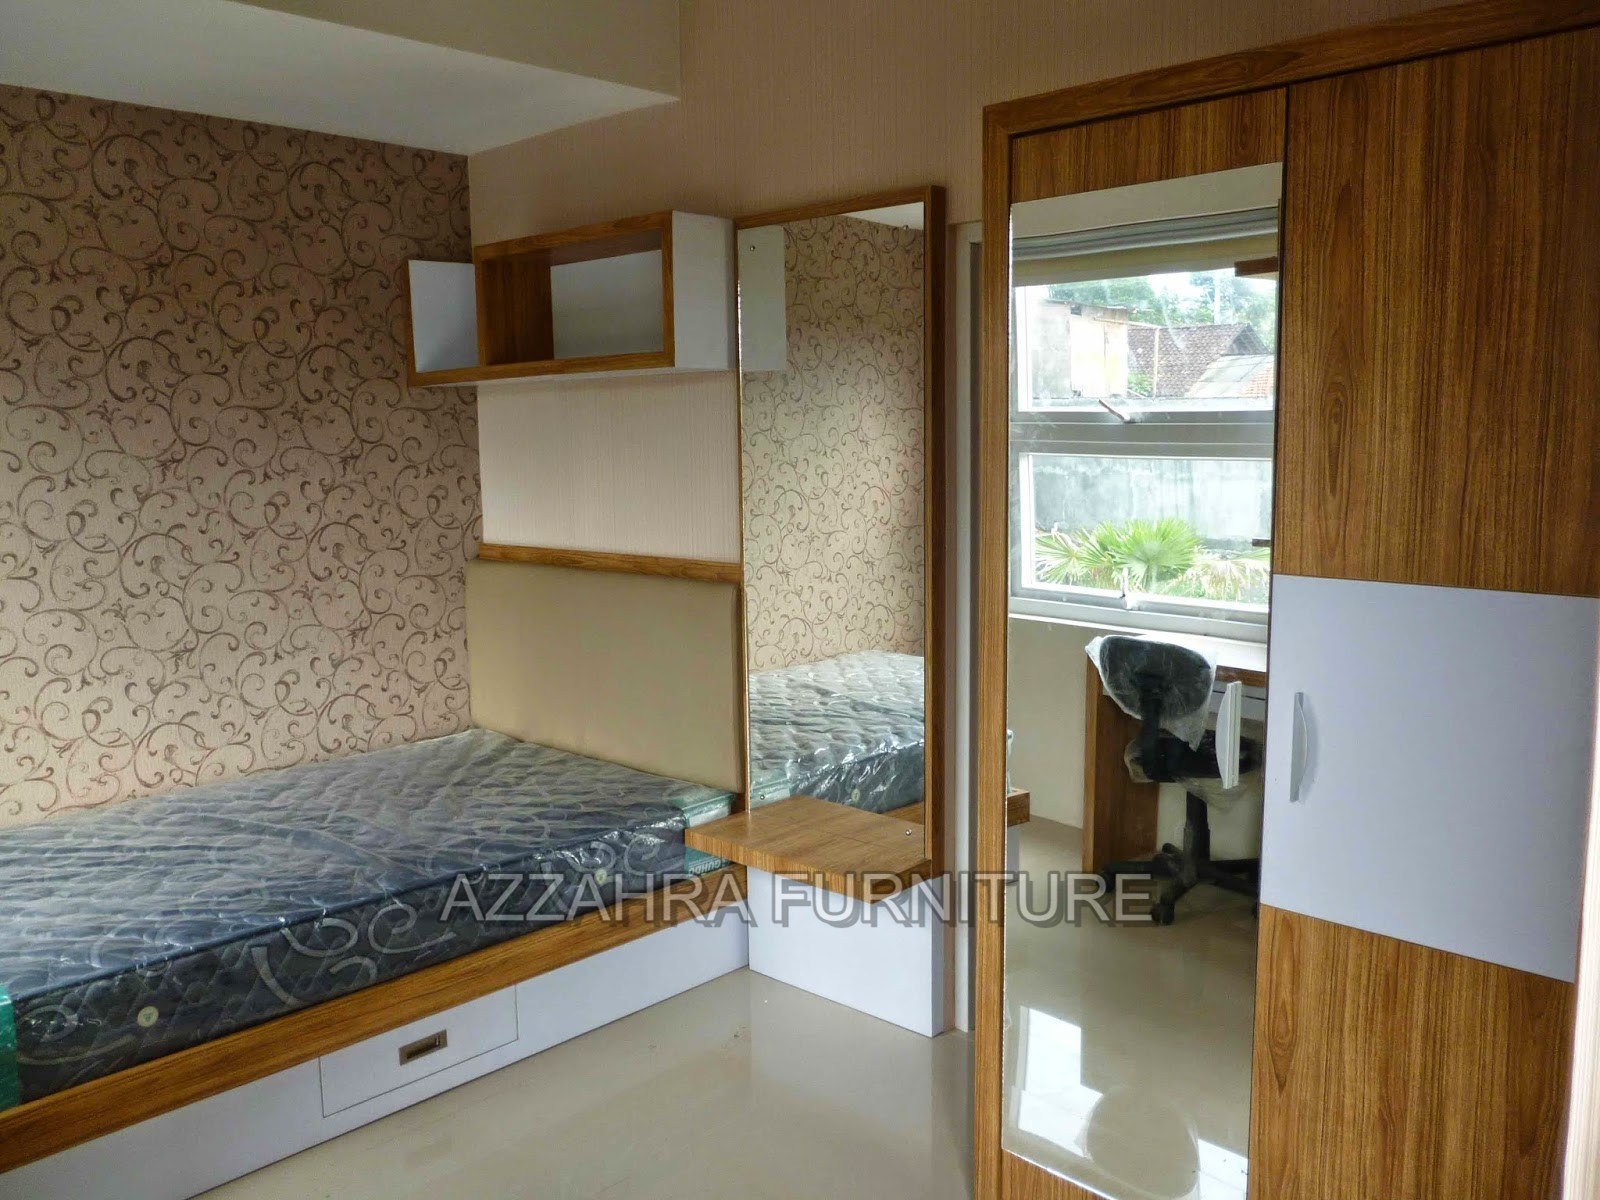 Design Kamar Kost Kecil Furniture Kamar Kost Costum Azzahra Furniture